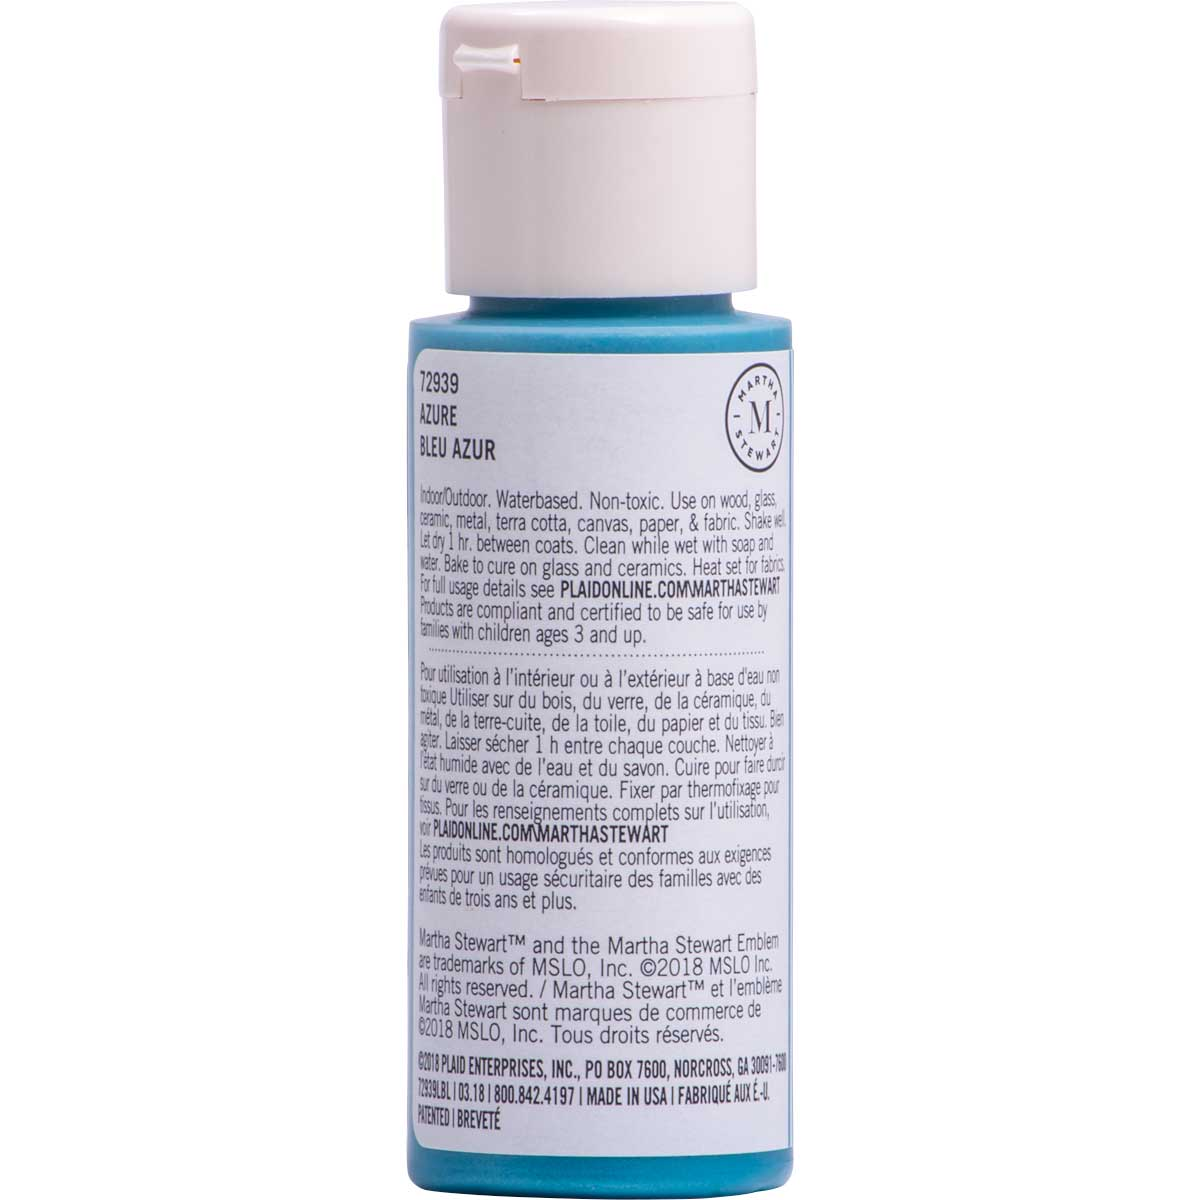 Martha Stewart ® Multi-Surface Pearl Acrylic Craft Paint CPSIA - Azure, 2 oz. - 72939